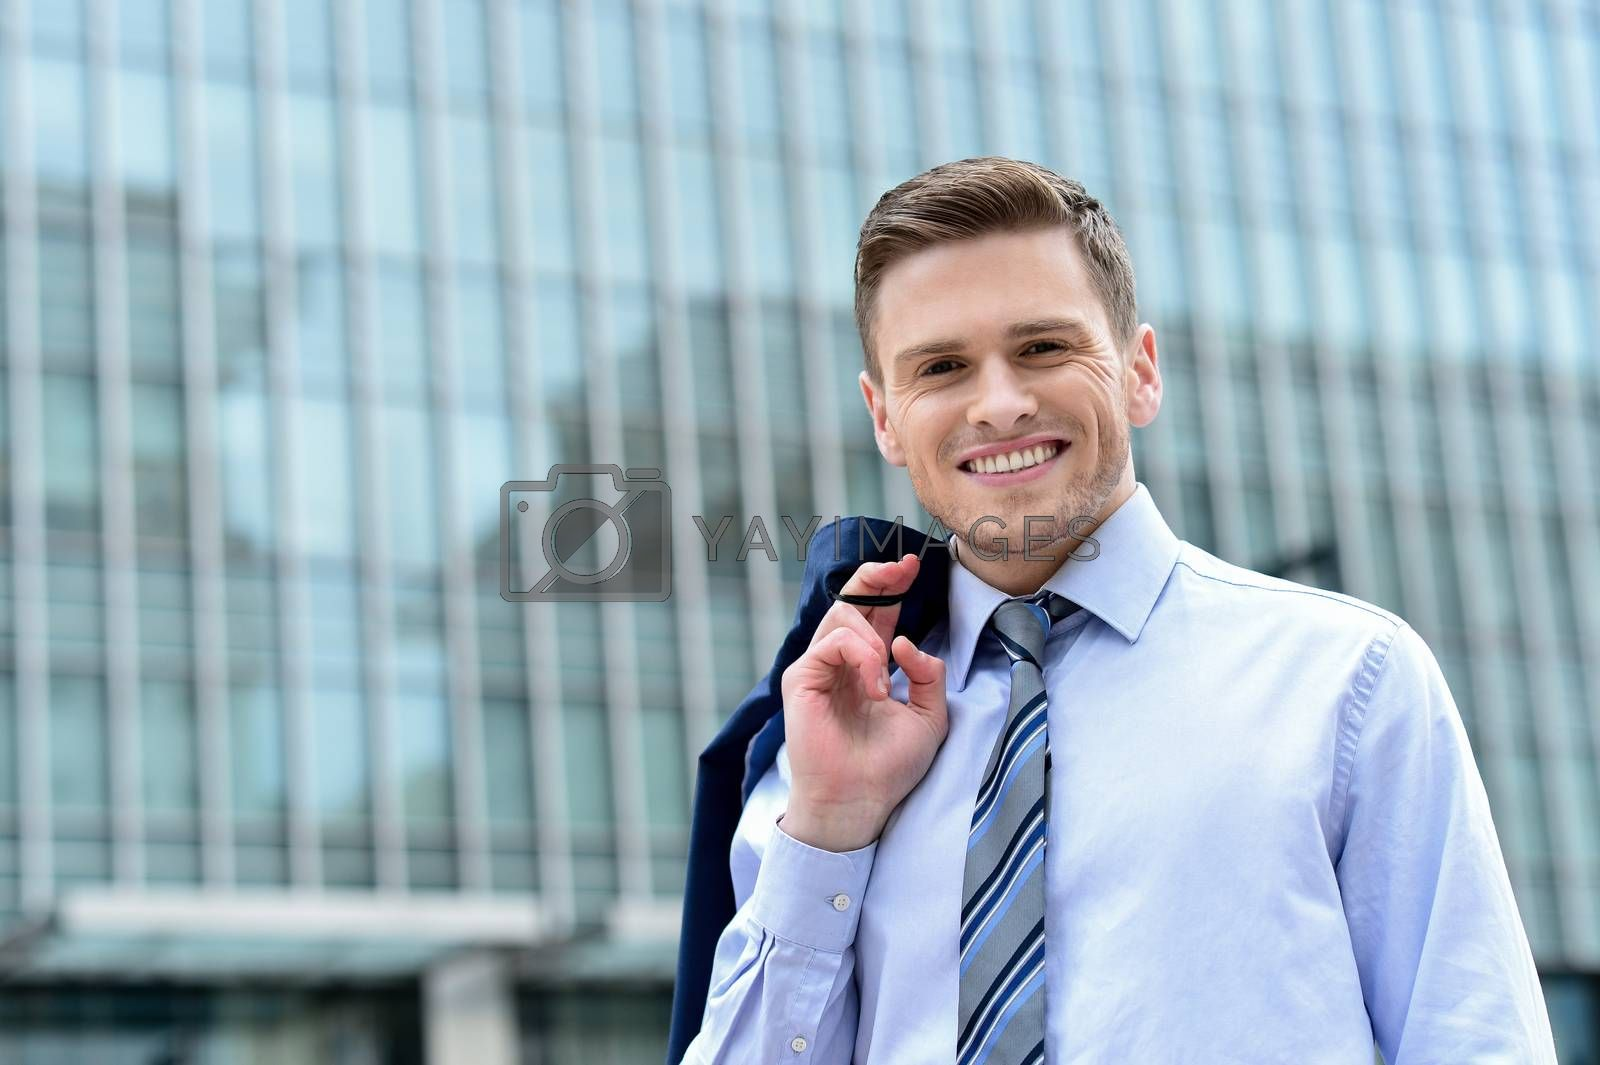 Businessman standing outside modern building by stockyimages